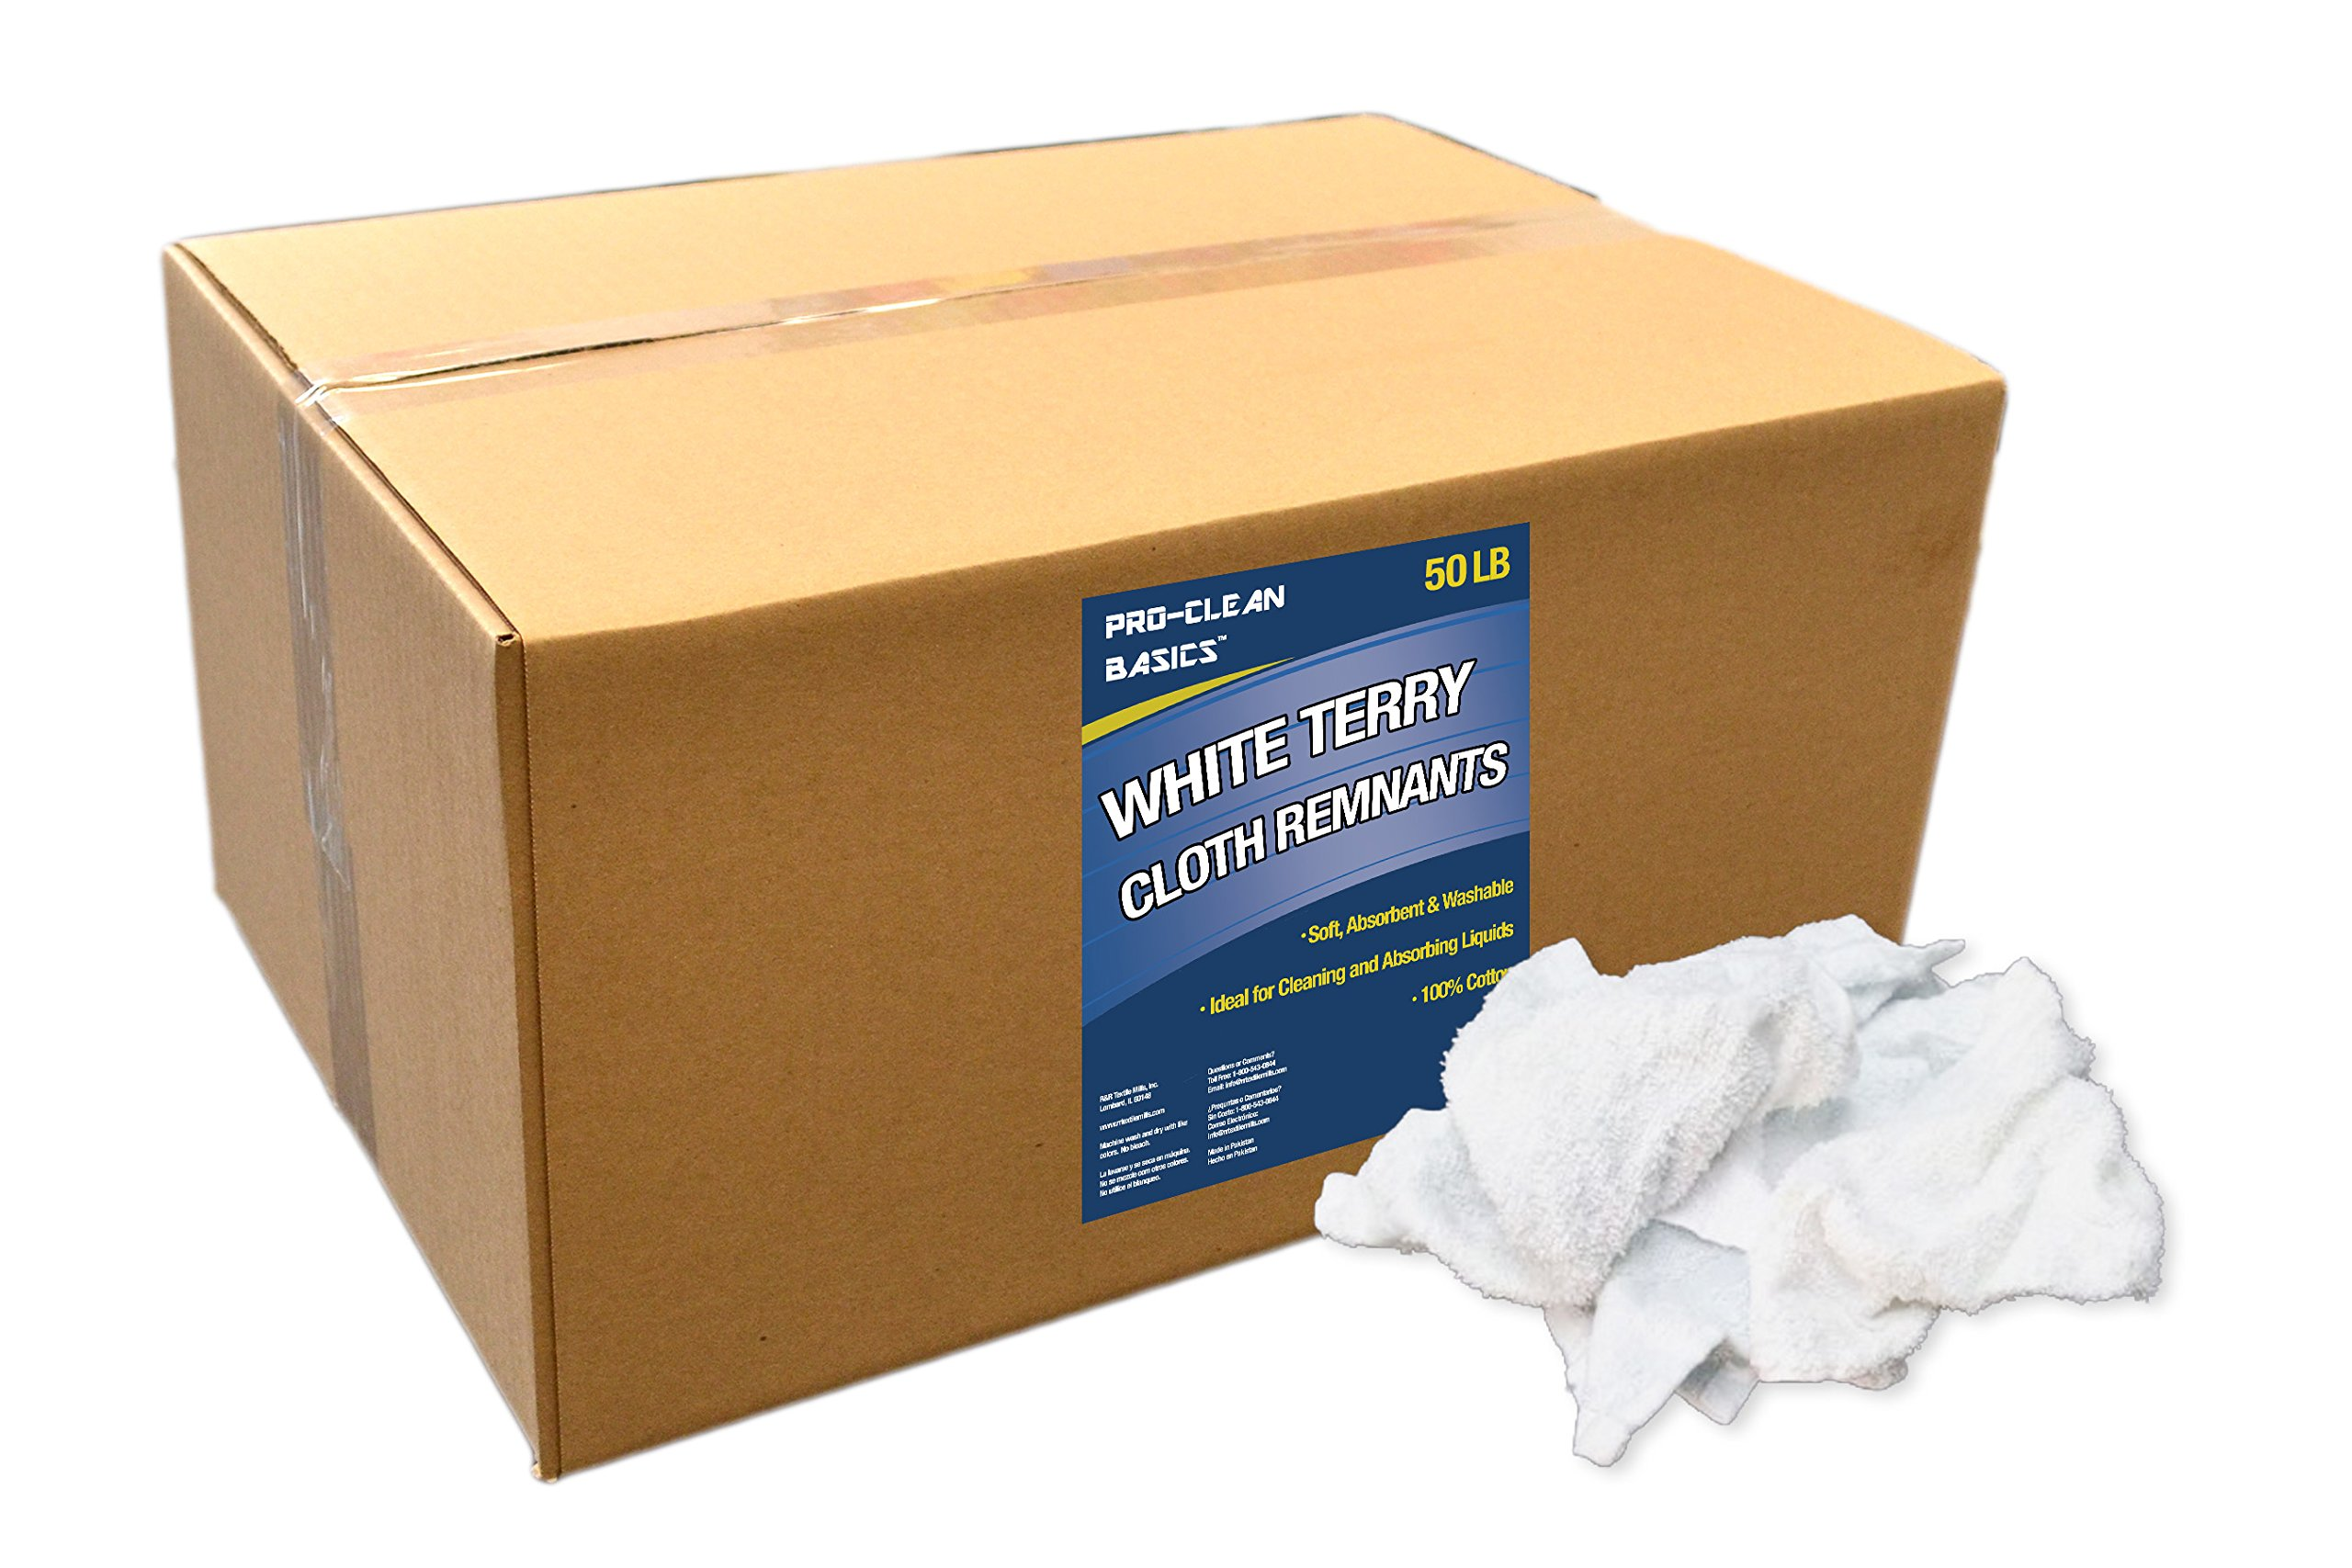 Pro-Clean Basics White Terry Cloth Rags: 15 lb. Box by Pro-Clean Basics